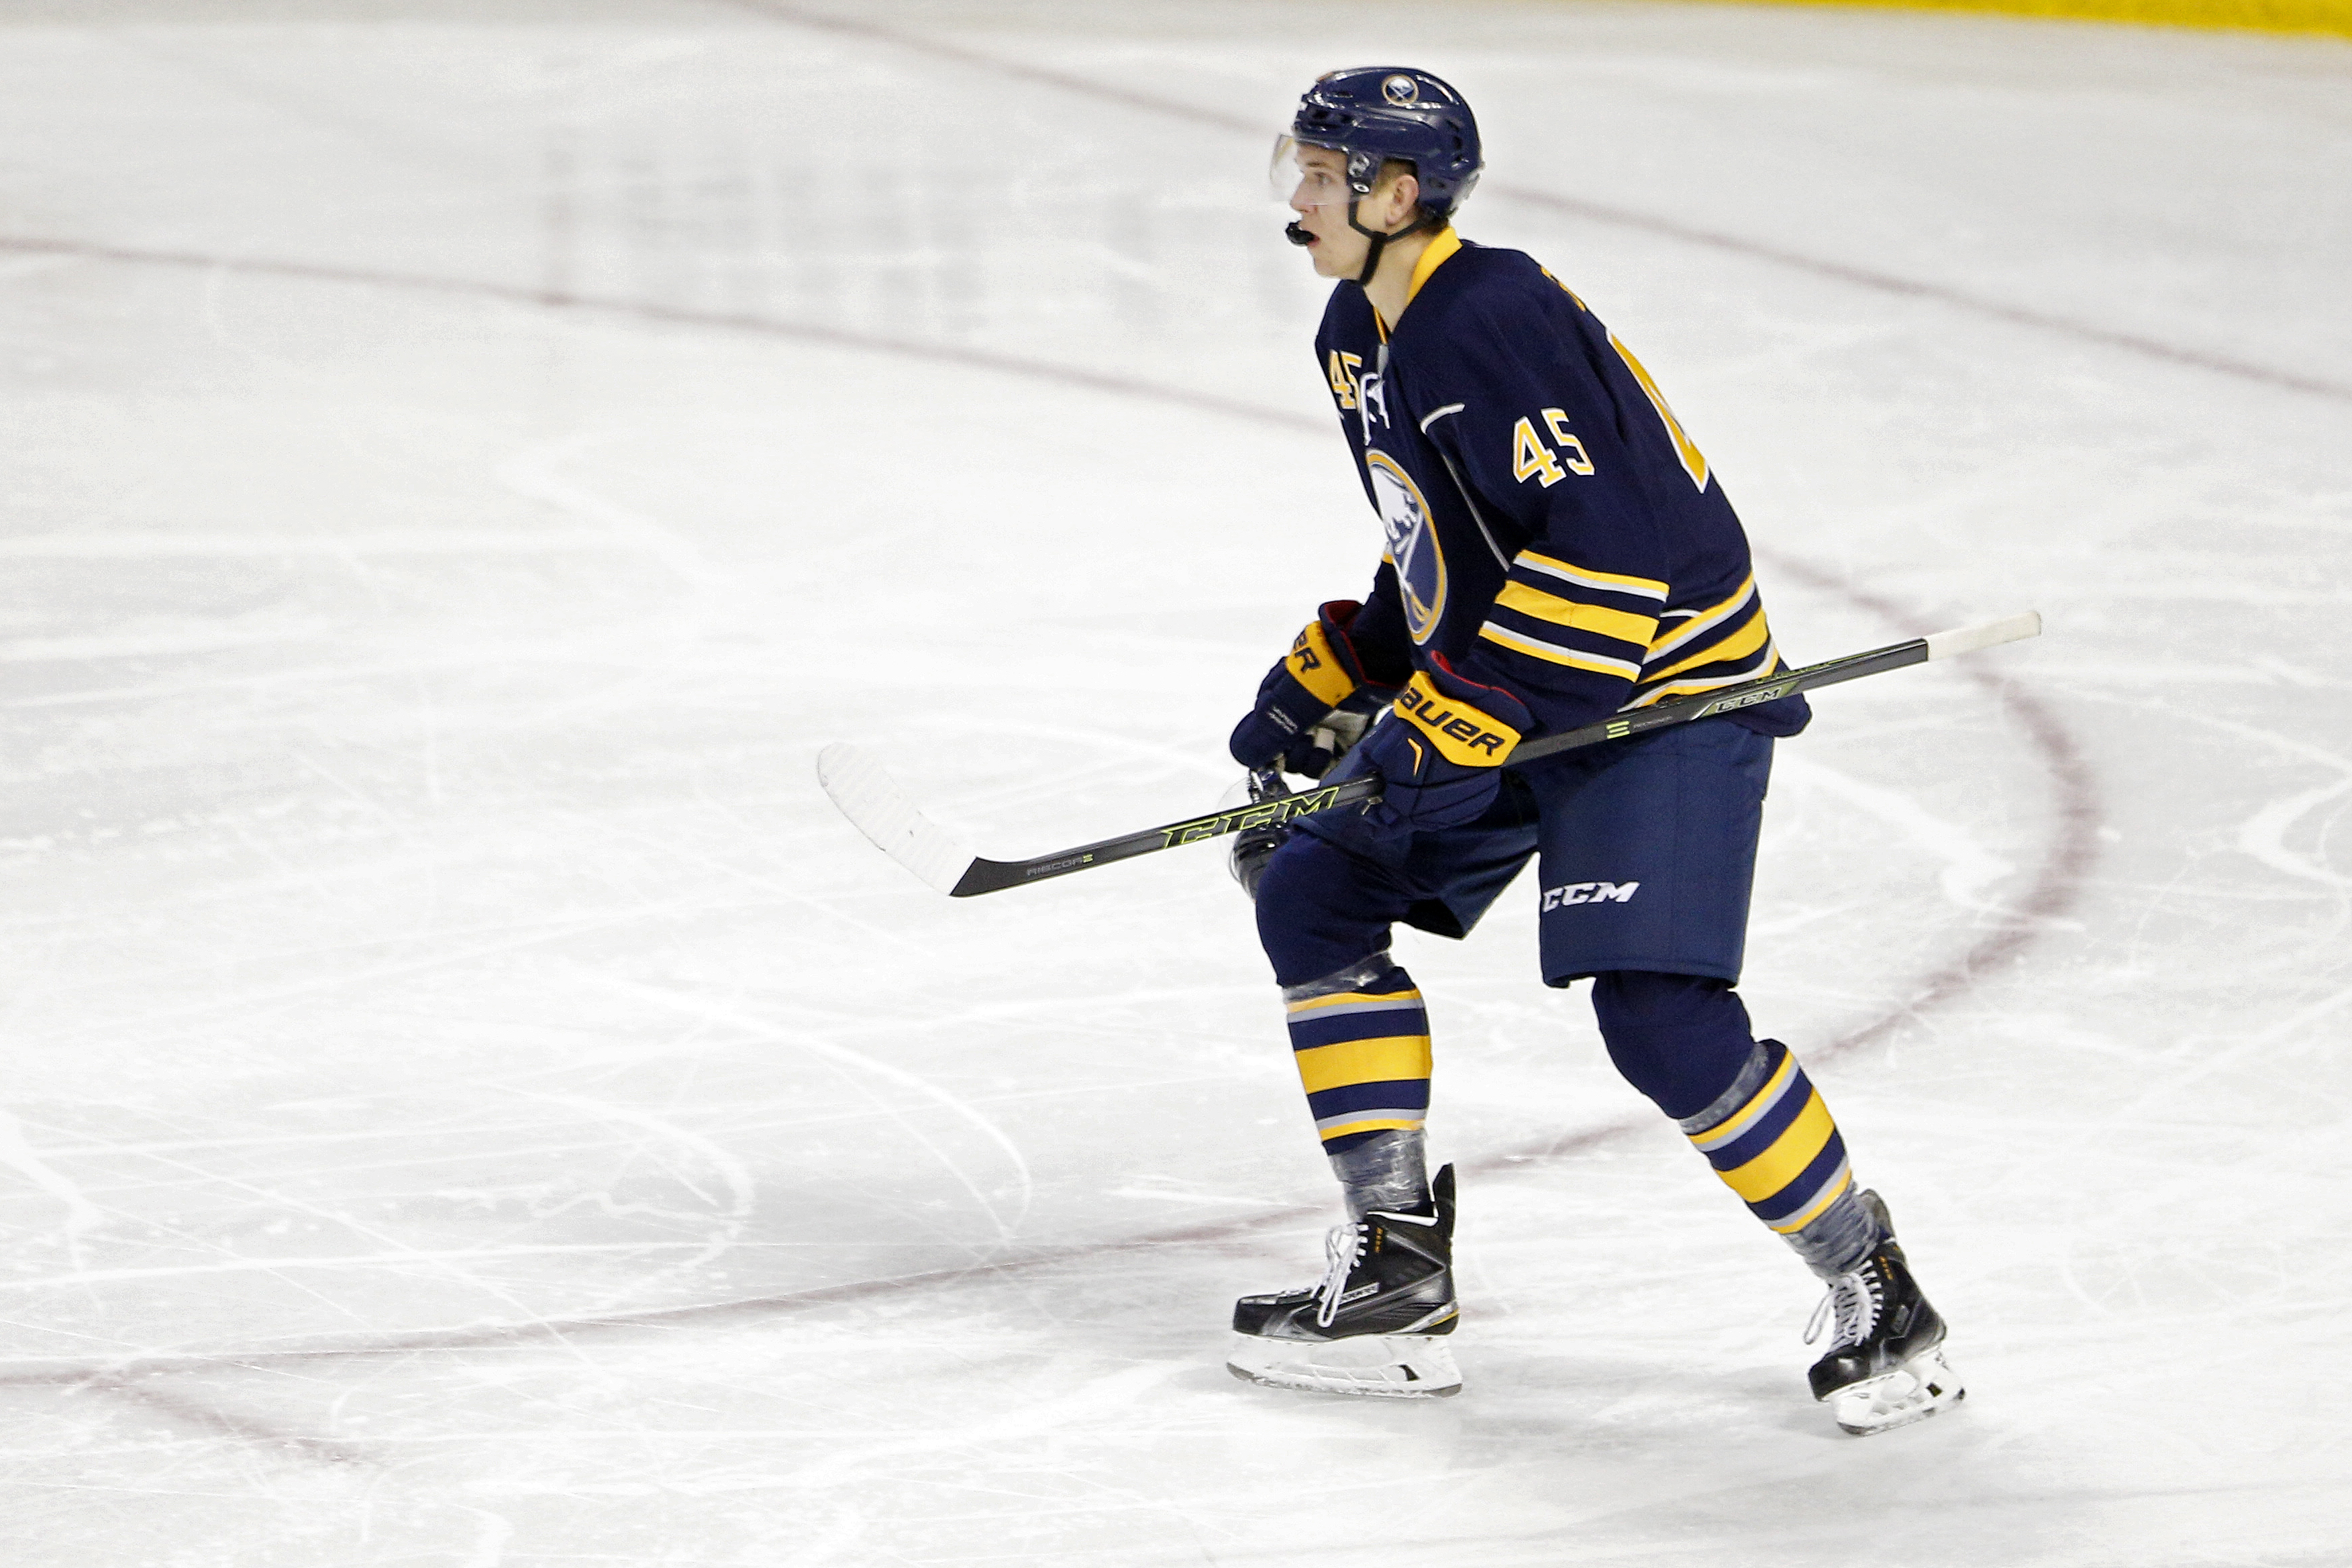 Brendan Guhle has appeared in preseason games for the Sabres, but Saturday is the real deal. (Getty Images)